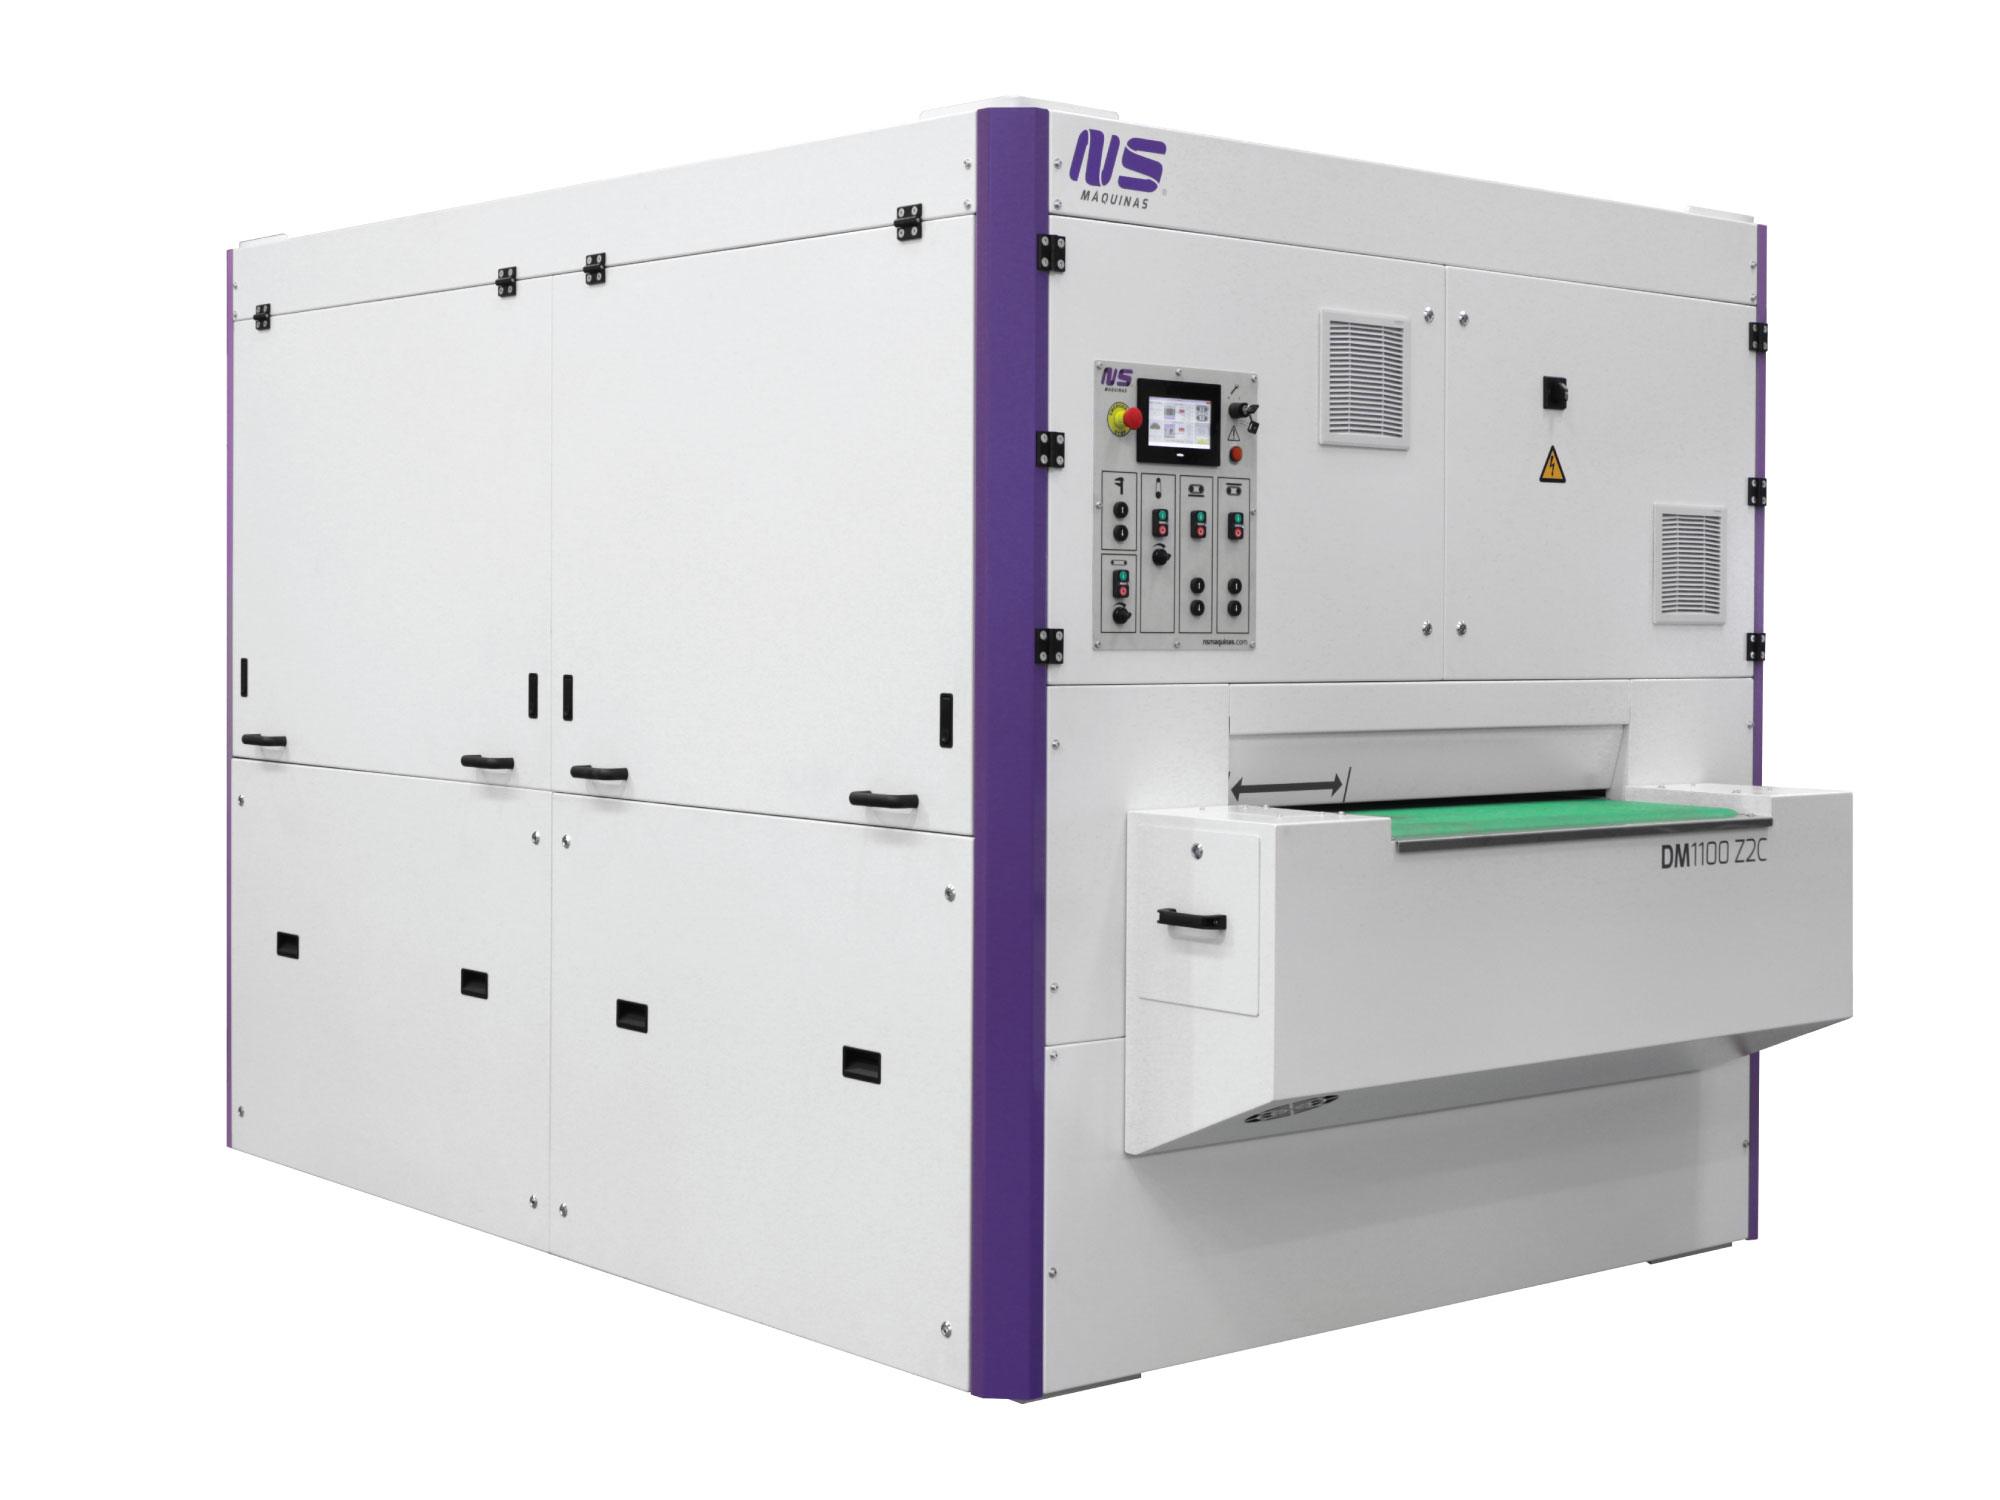 DM1100 Z2C - Deburring and Double Side Edge Rounding Machine